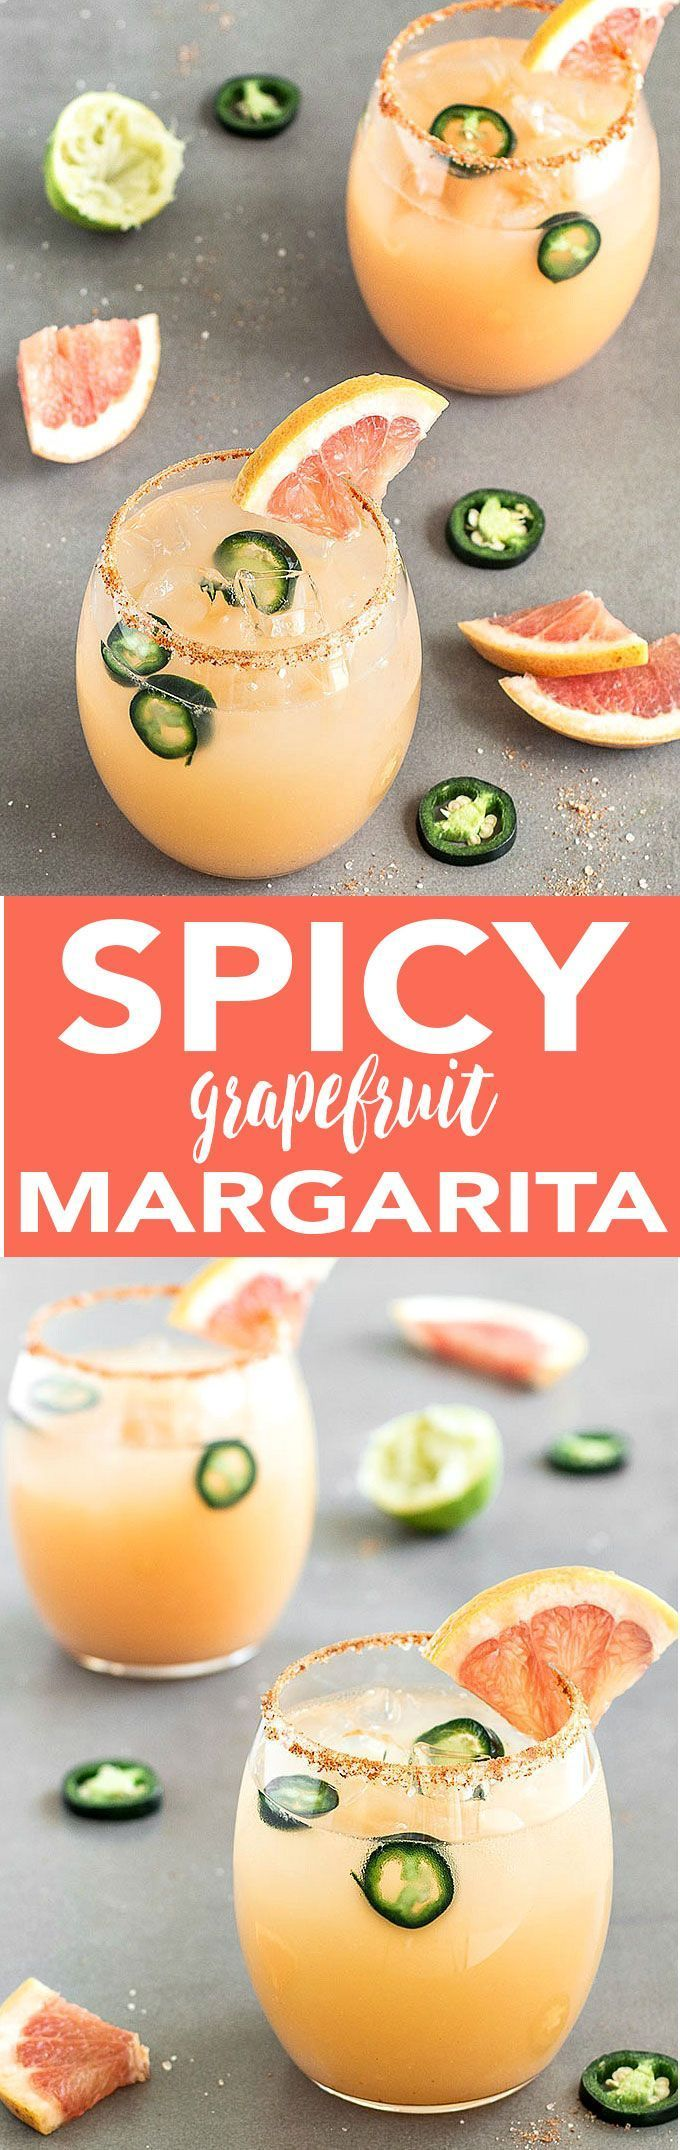 Spicy Grapefruit Jalapeño Margarita - A fun twist on a classic drink ...